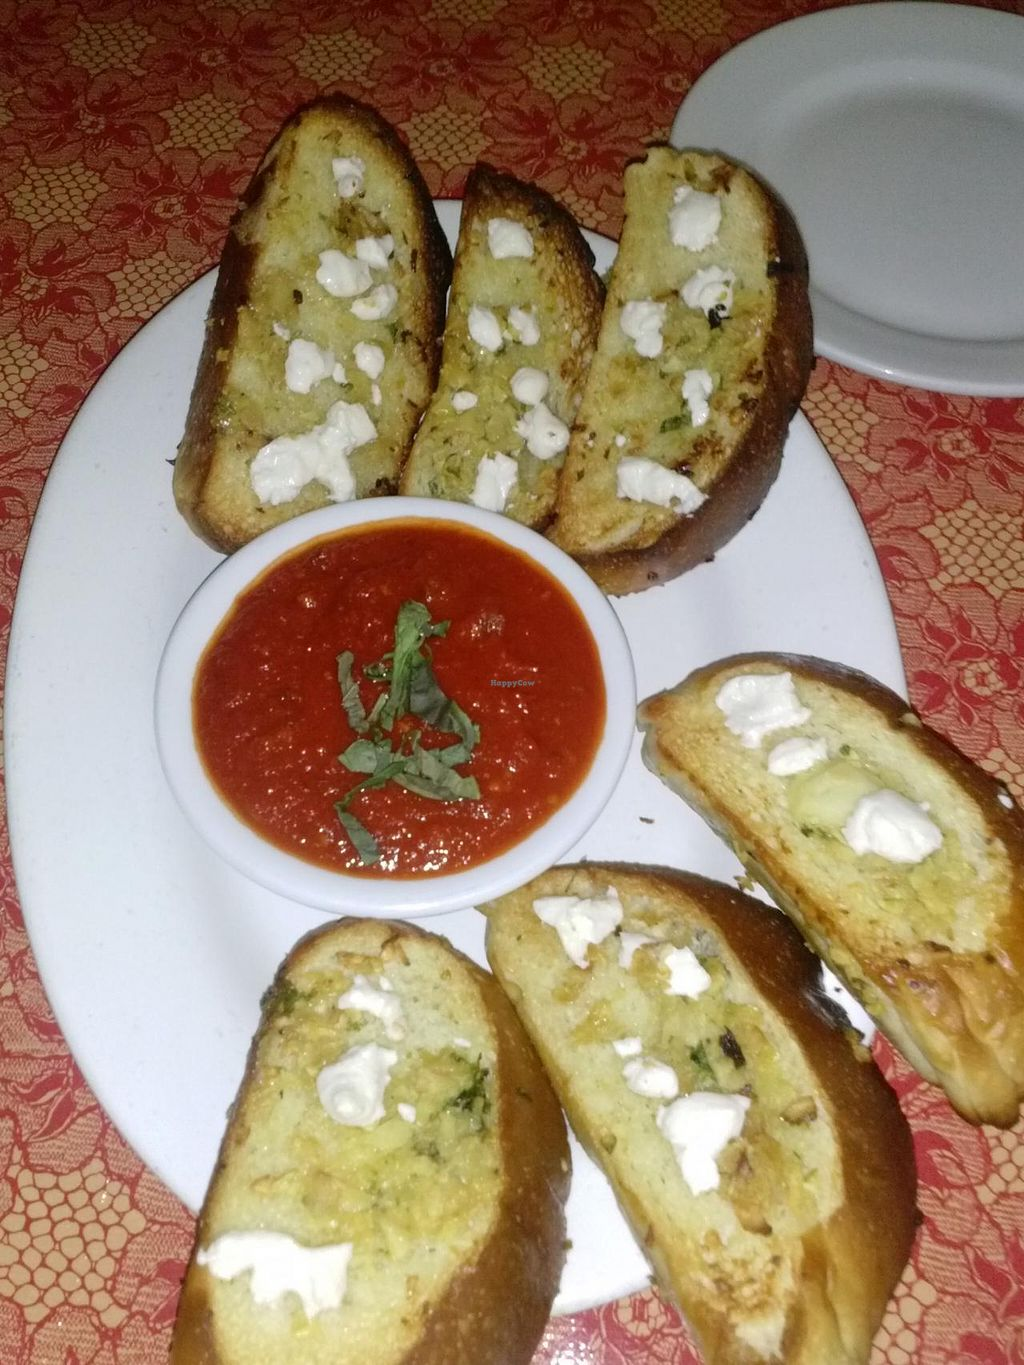 """Photo of Masa of Echo Park  by <a href=""""/members/profile/Sonja%20and%20Dirk"""">Sonja and Dirk</a> <br/>garlic bread <br/> July 1, 2014  - <a href='/contact/abuse/image/23584/73031'>Report</a>"""